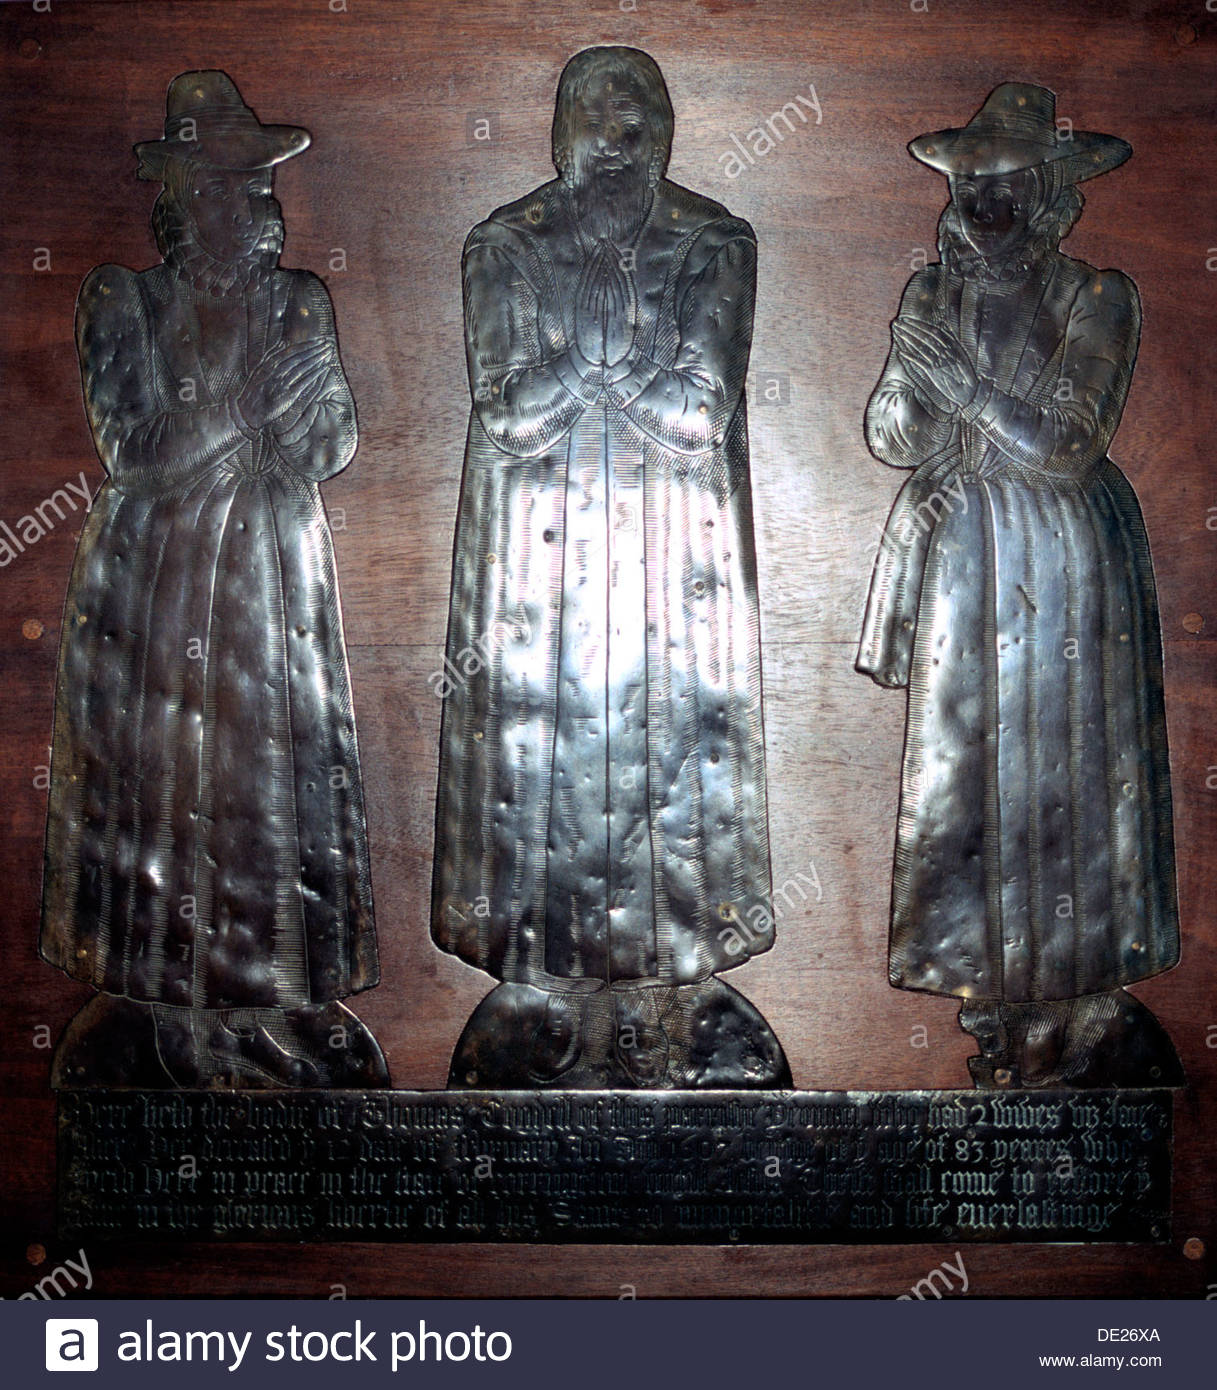 Cogdell Brass, Stuart period, St Lawrence Church, Abbots Langley, Hertfordshire, 1607. Artist: Mike Maidment - Stock Image